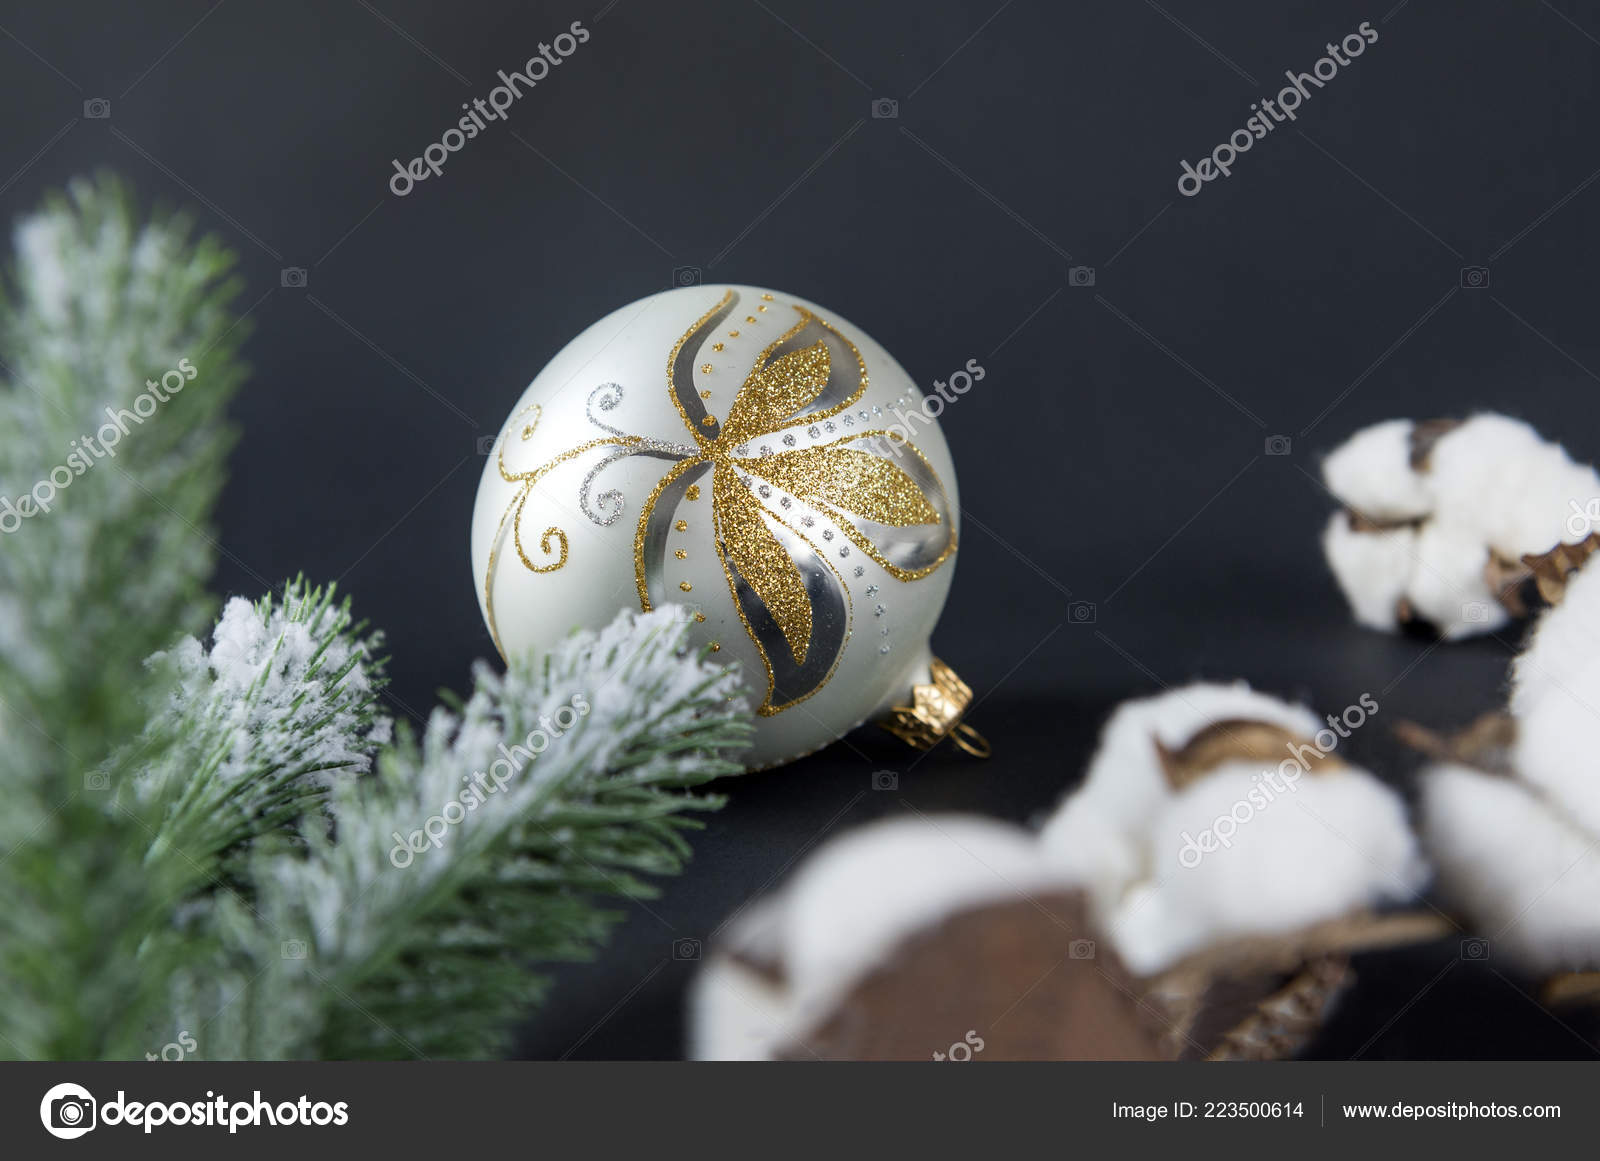 Silver Christmas Ball Golden Pattern Cotton Branches Spruce Branch Black Stock Photo C Elenaboronina111 Gmail Com 223500614